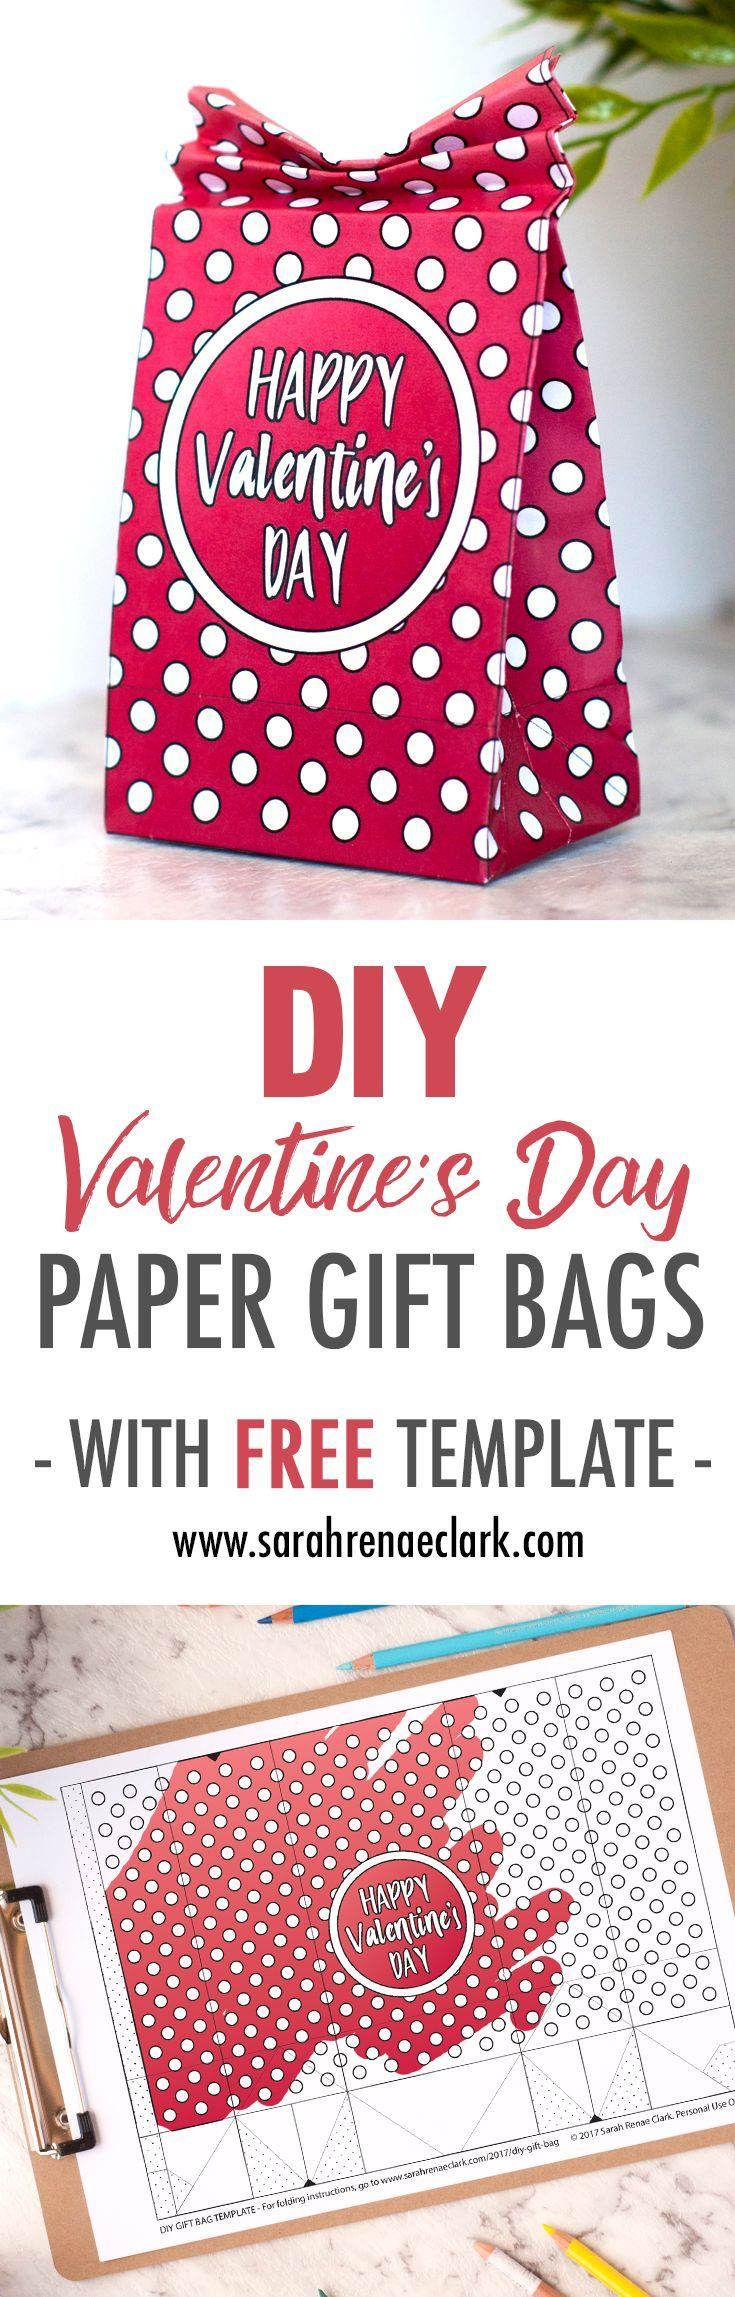 #valentines day 2018 #target valentines day #anti valentines day #walmart valentines day #what day is valentines day #valentines day quotes for lover #valentines day gifts idea for her #ideas for valentines day date